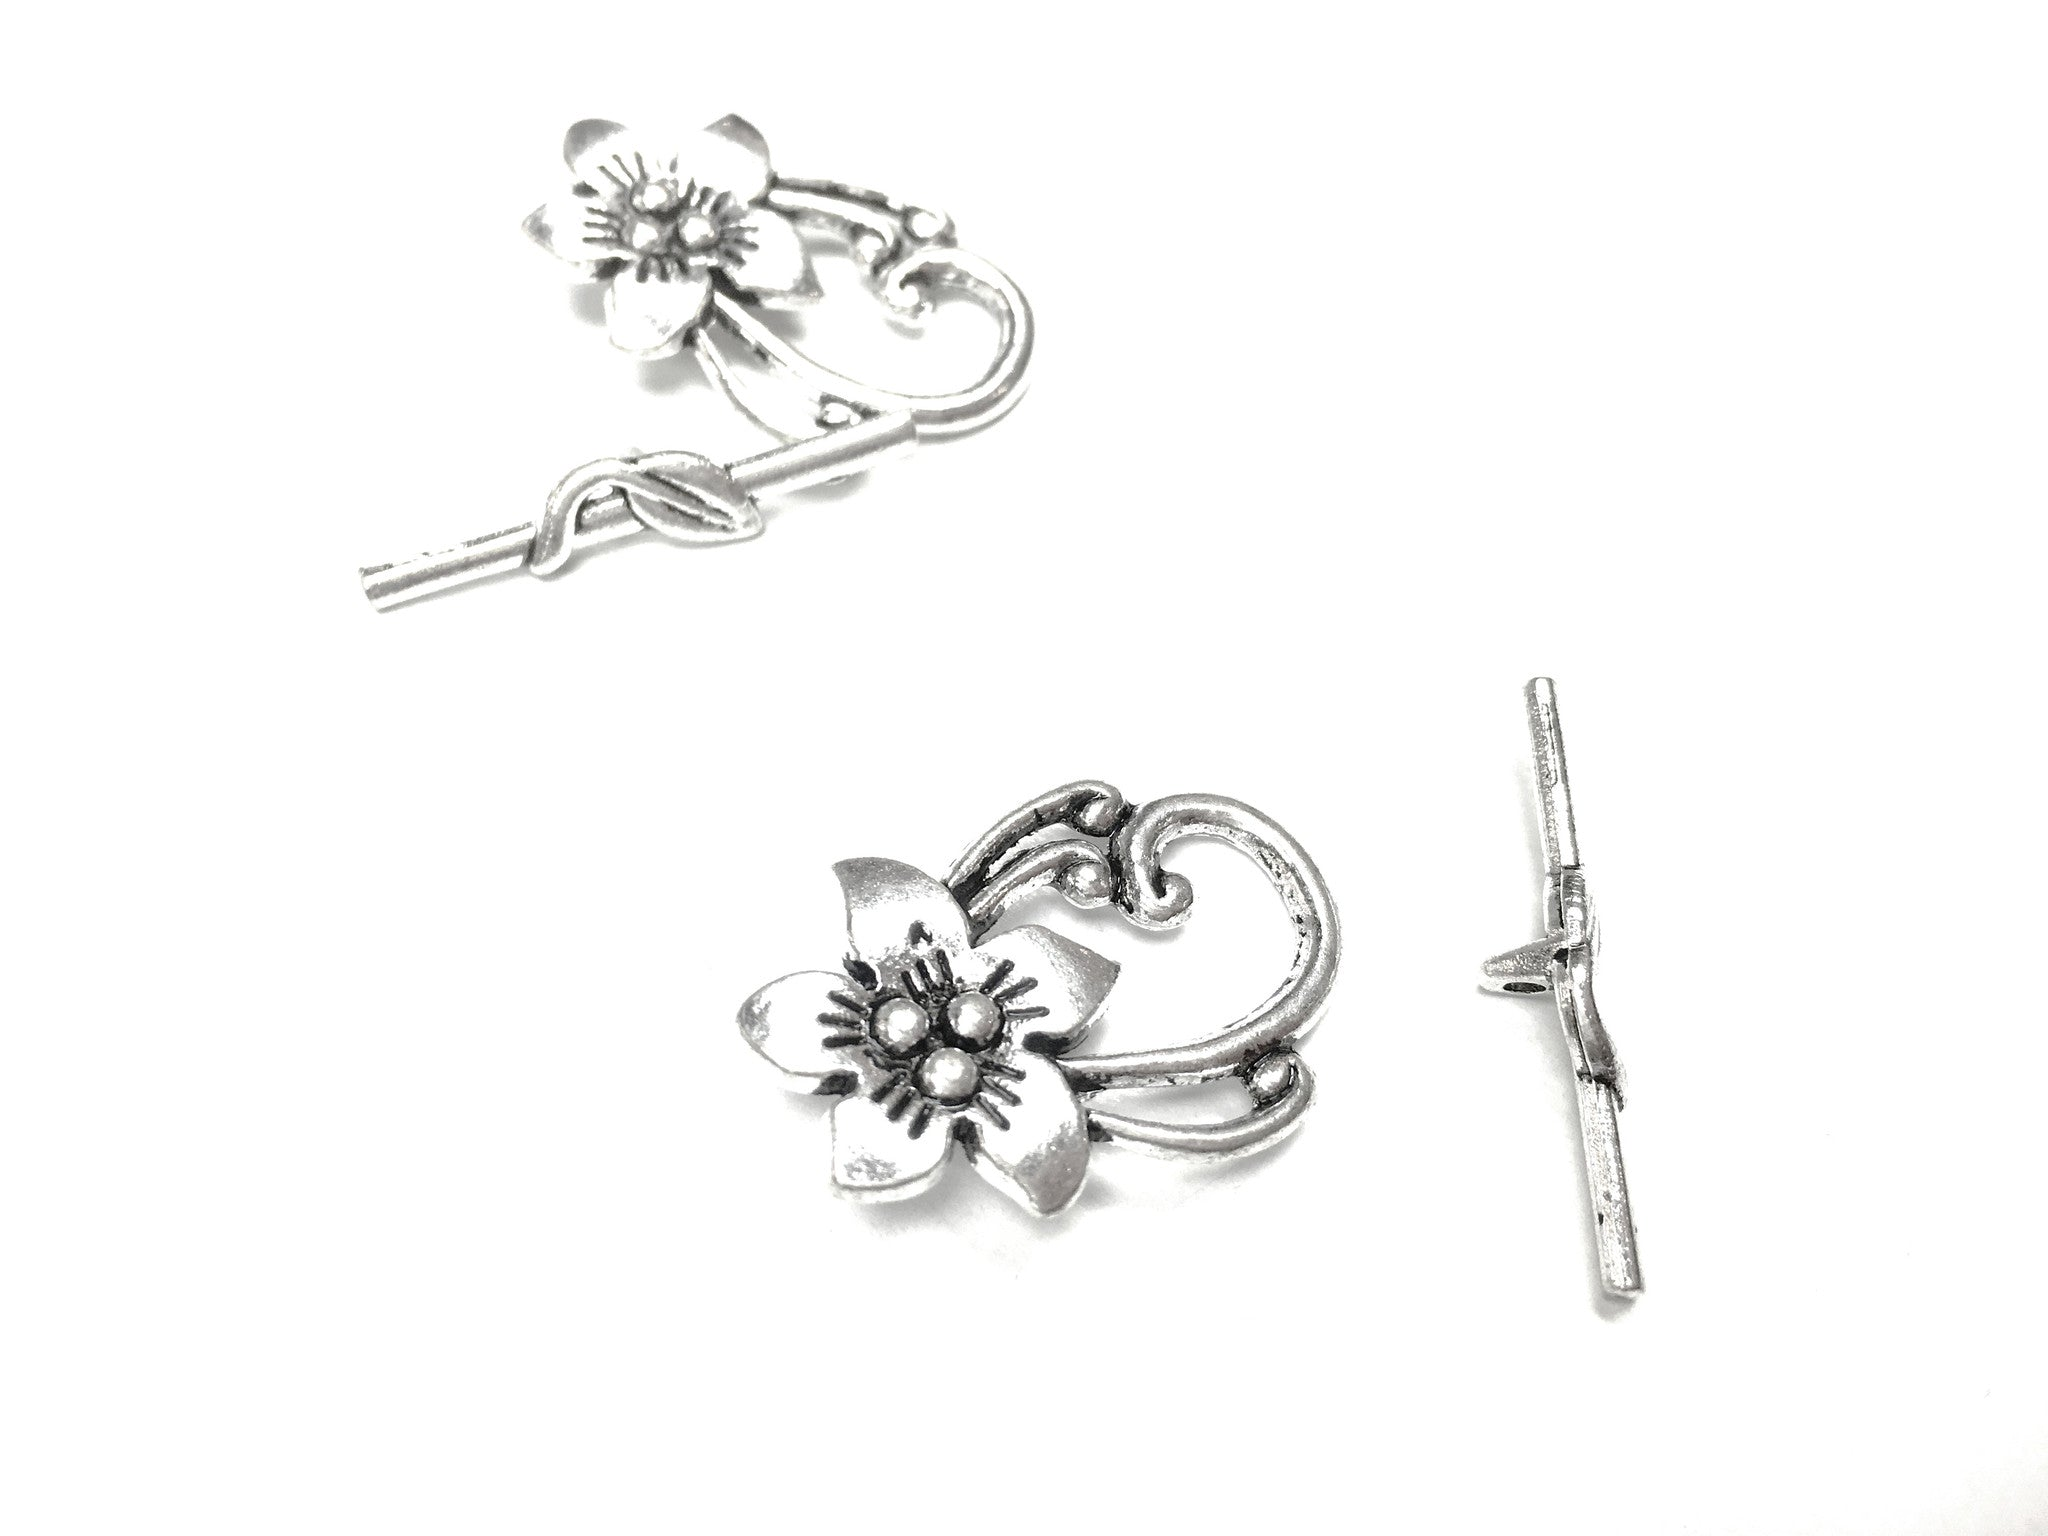 Toggle Clasp - Antique Silver - Flower Detail - 30X20MM- Pkg of 2 Sets